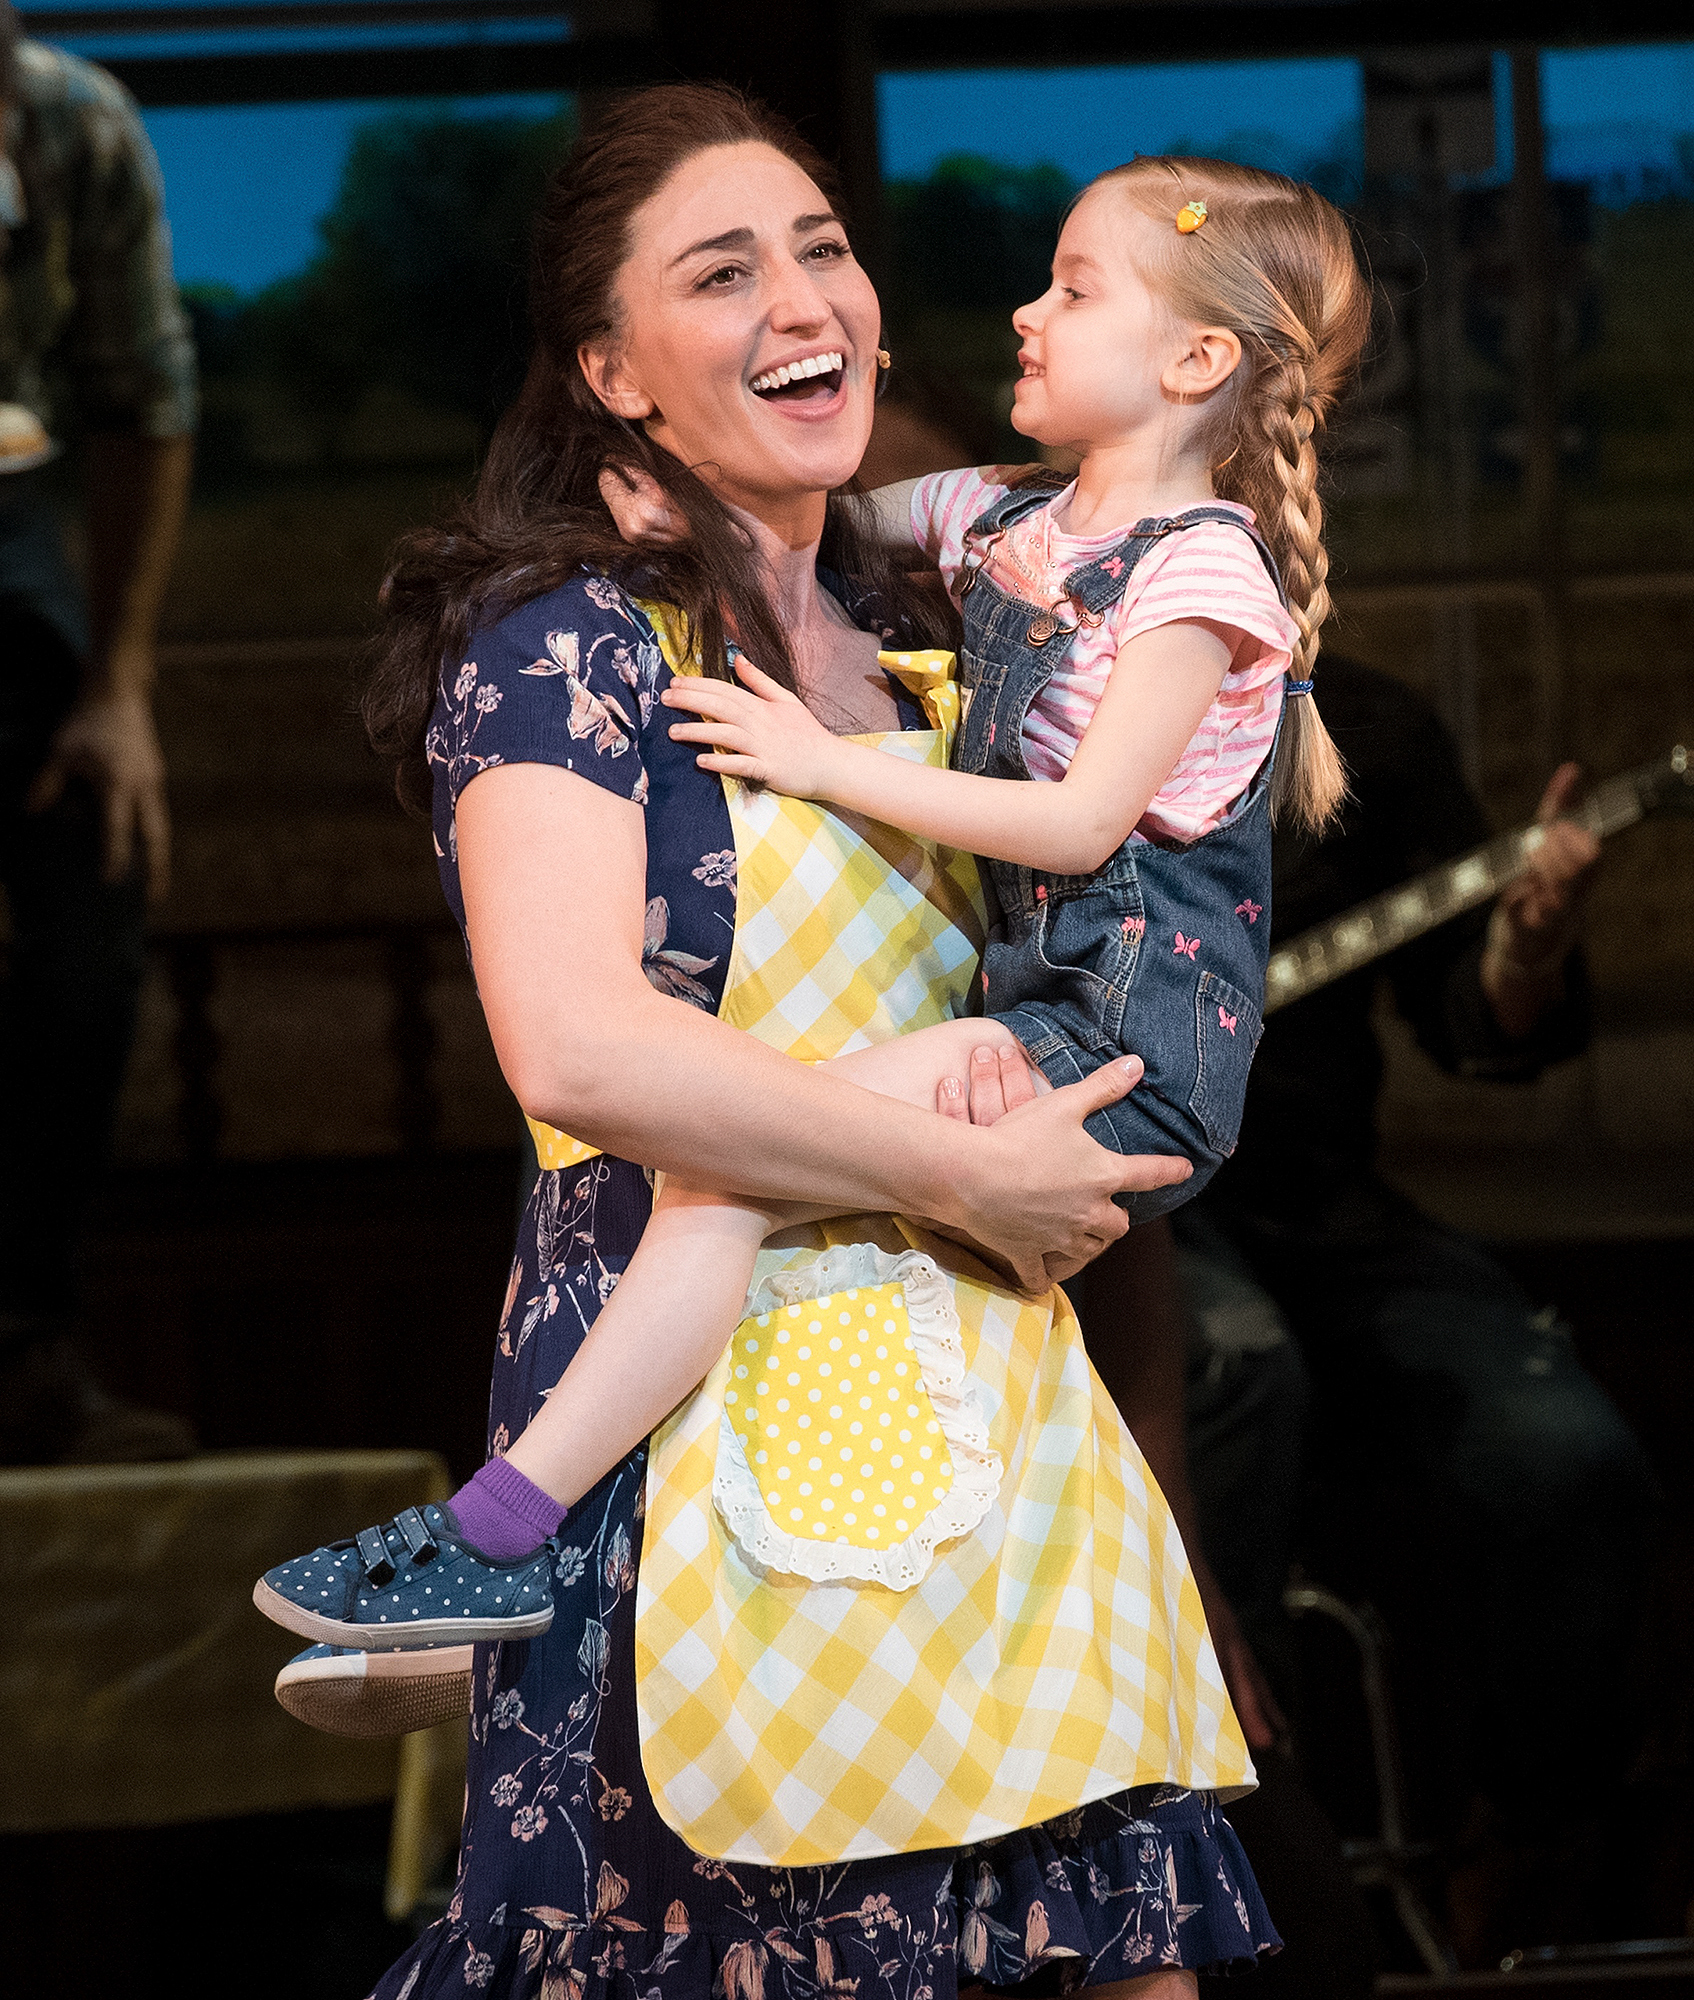 Waitress Broadway See Katharine Mcphee In Costume For First Time People Com